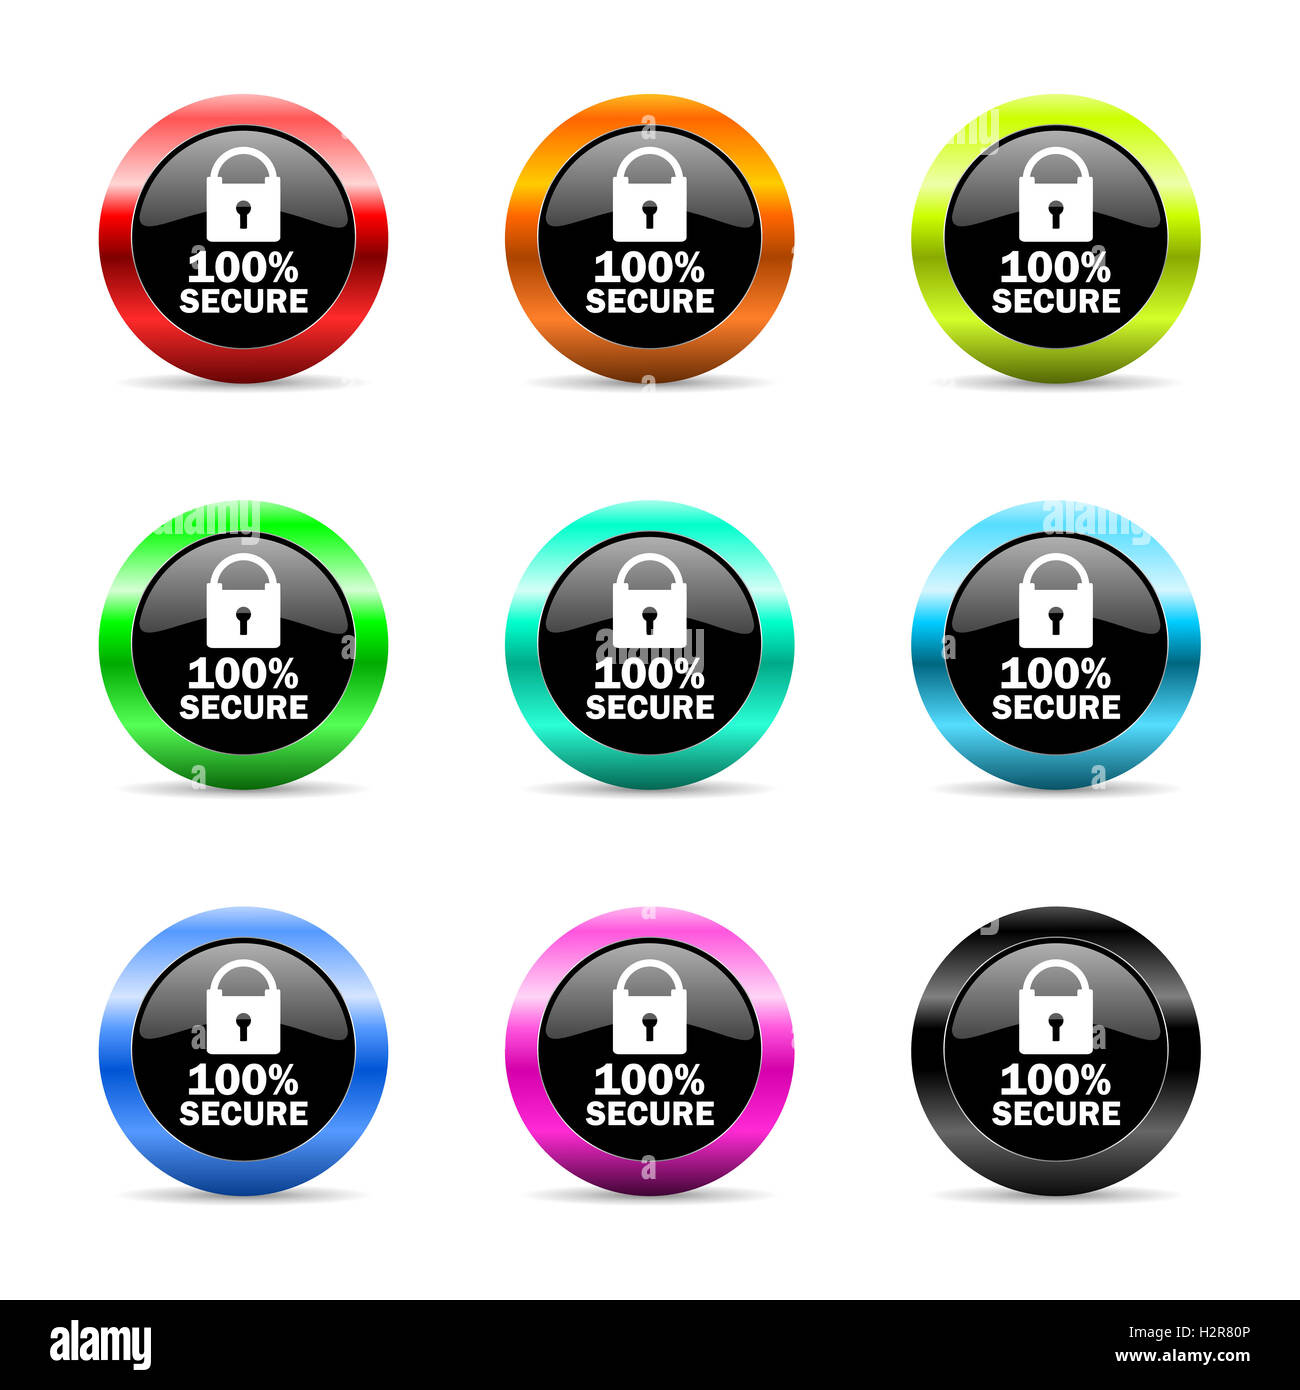 secure web icons set - Stock Image